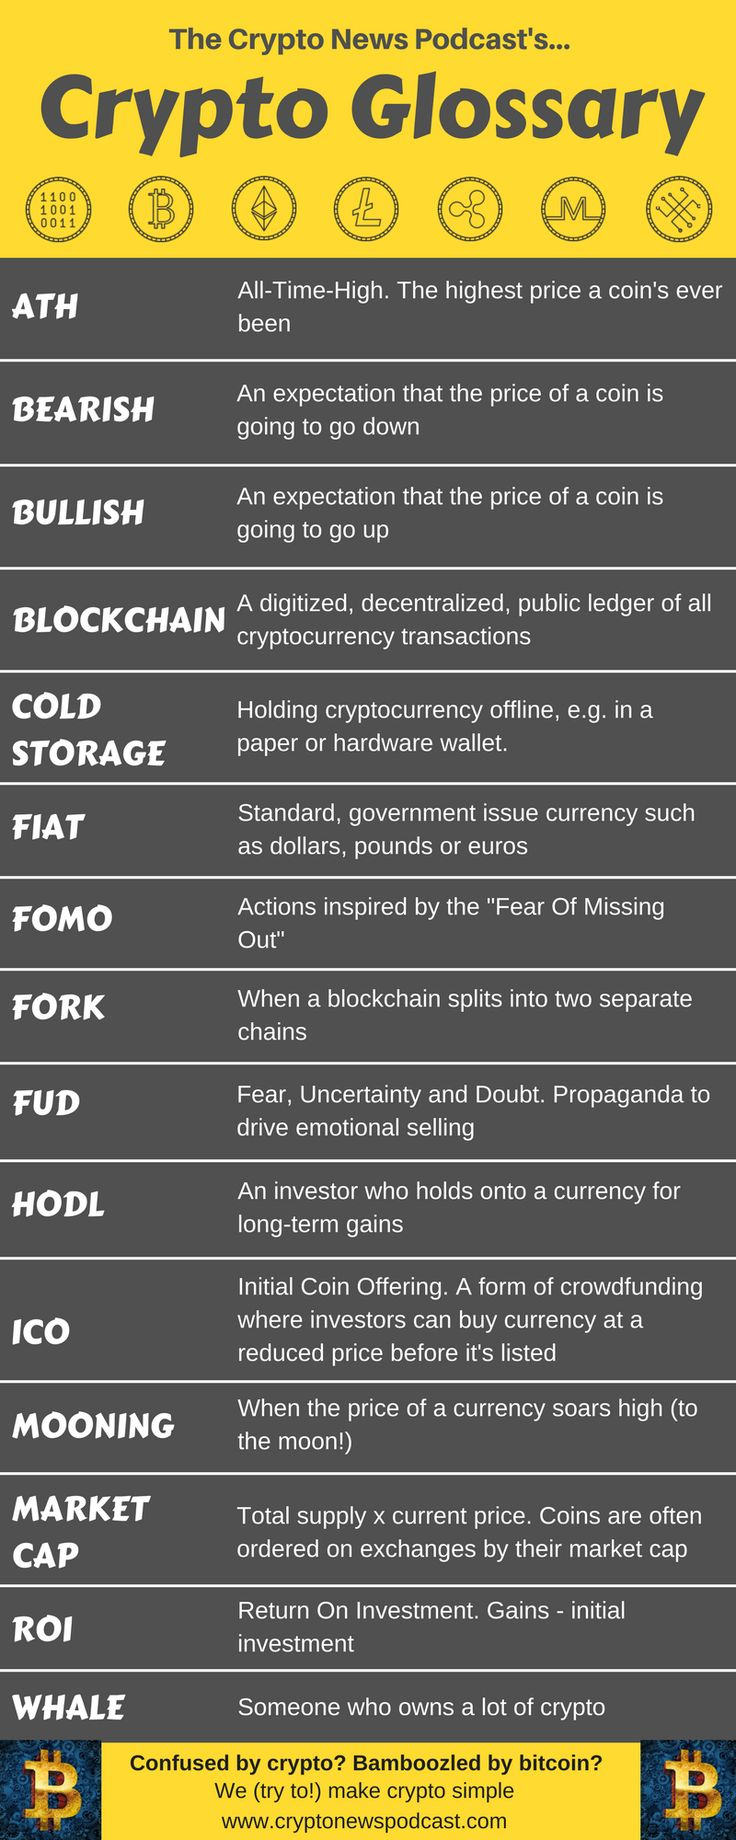 Confused by all the jargon surrounding Bitcoin and Cryptocurrency? We've produced this infographic to help make things a little clearer :-) If you want to find out more about cryptocurrencies without all the 'tech speak' check out our podcast at https://cryptonewspodcast.com/